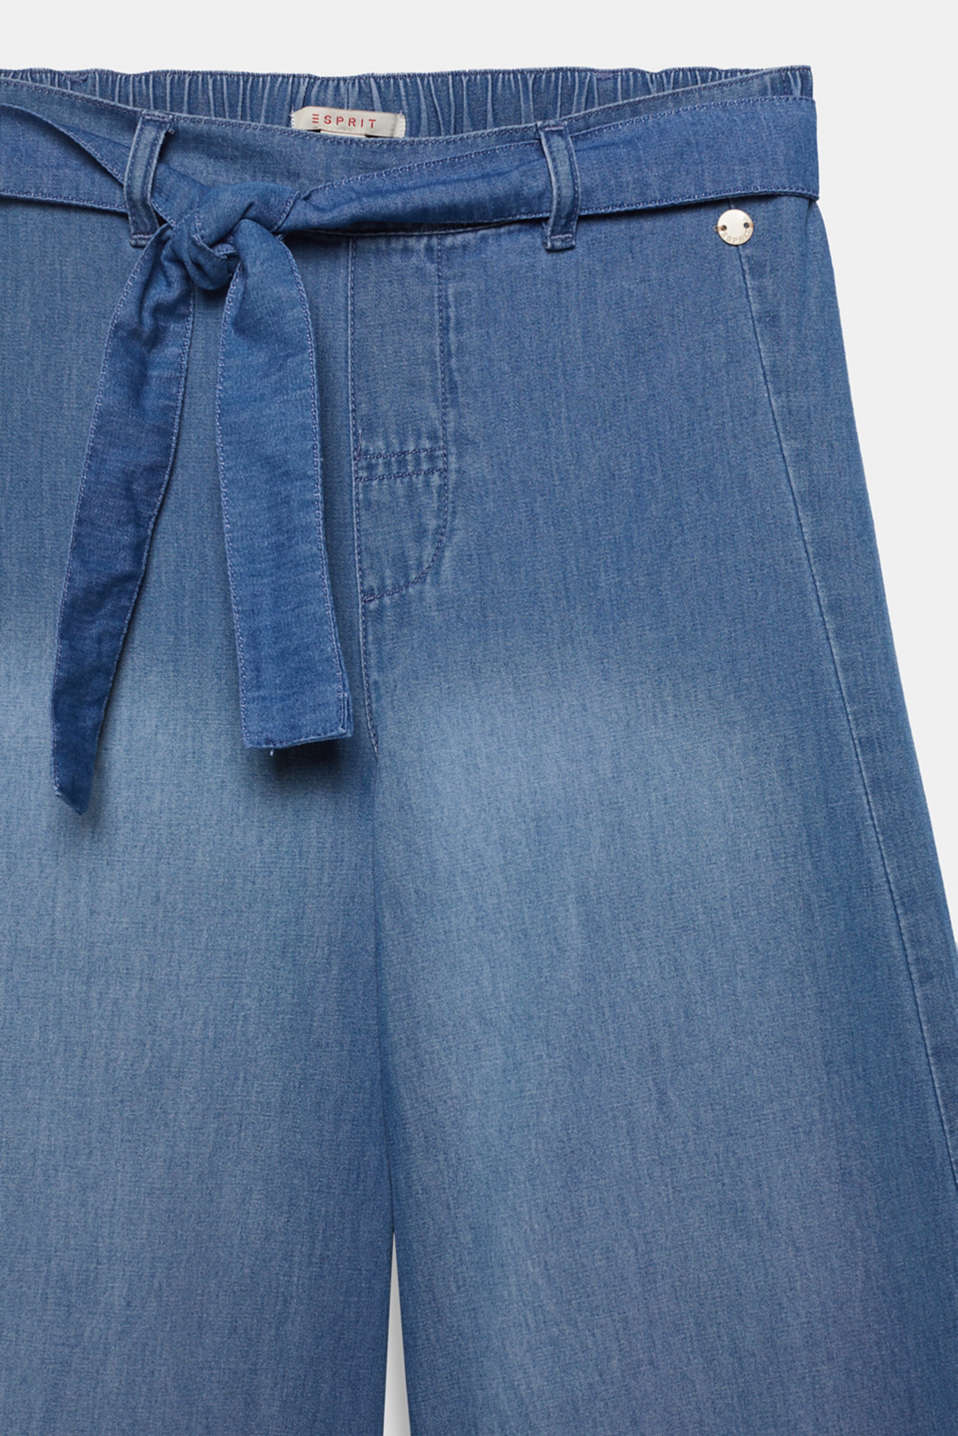 Culottes with a tie-around belt, 100% cotton, LCMEDIUM WASH DE, detail image number 2